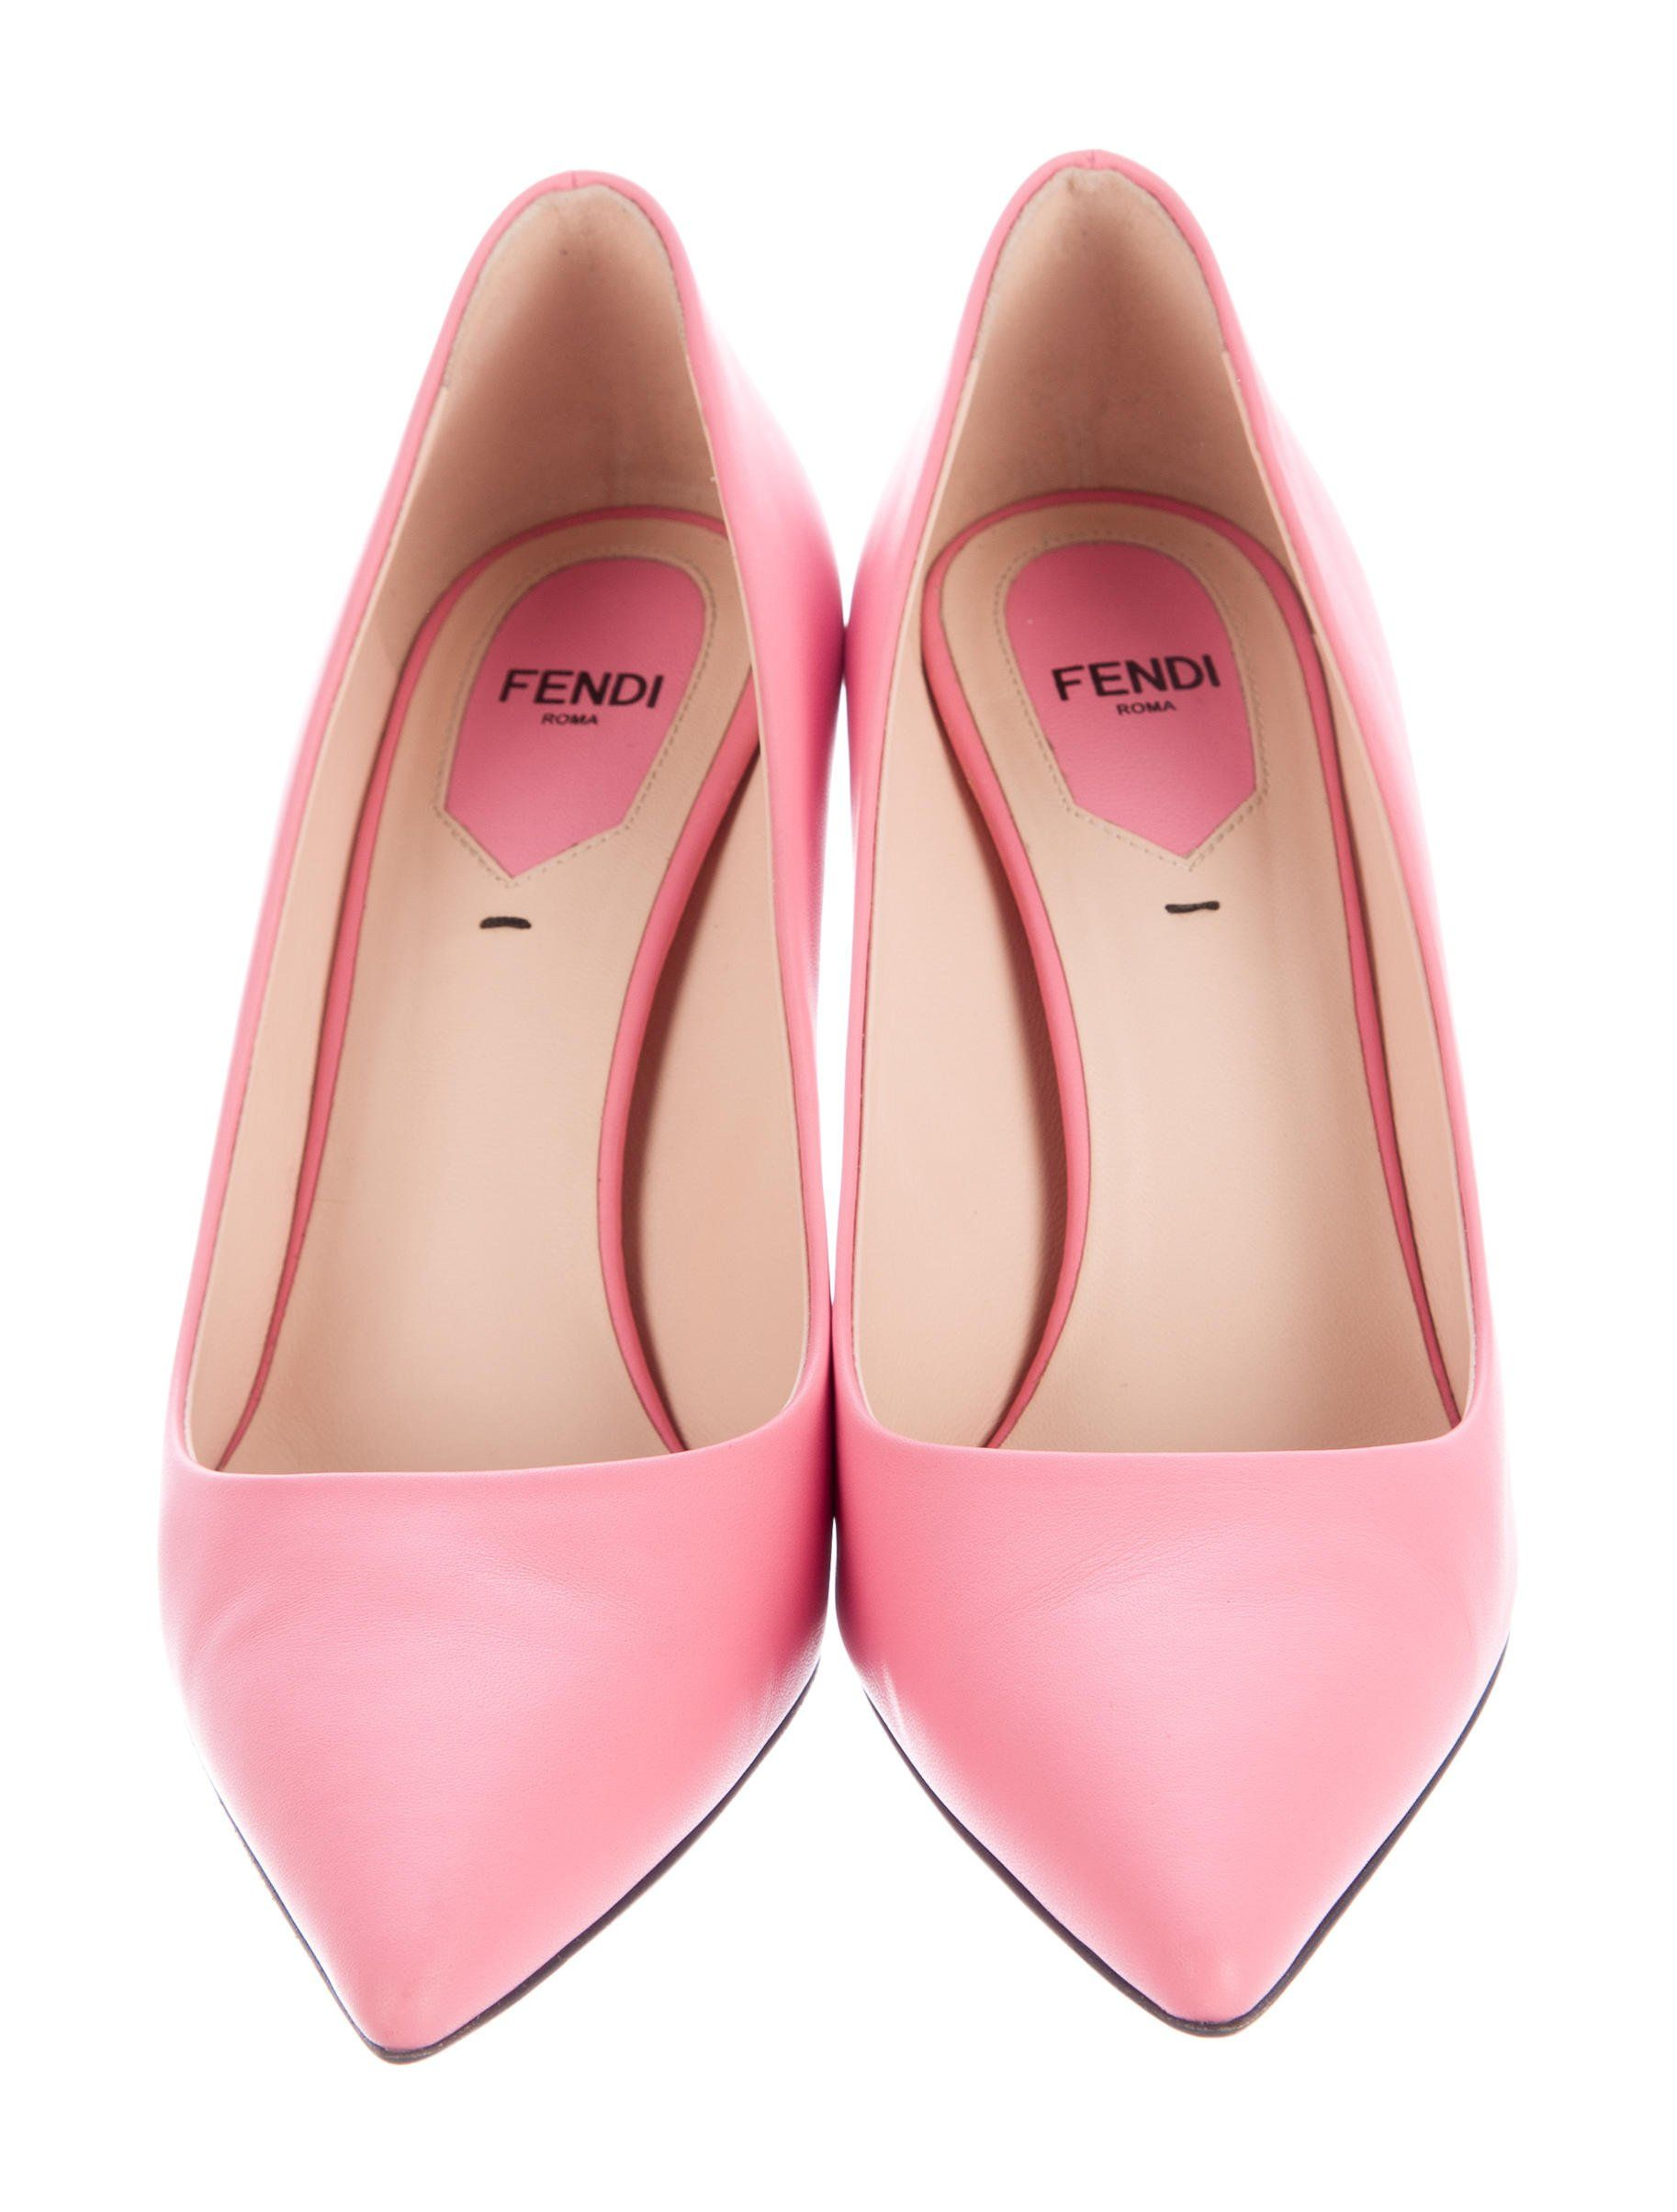 97ec46642b Pink leather Fendi pointed-toe pumps with tonal stitching and stacked heels  featuring pequin-stripe accent. Includes box and additional heel taps.